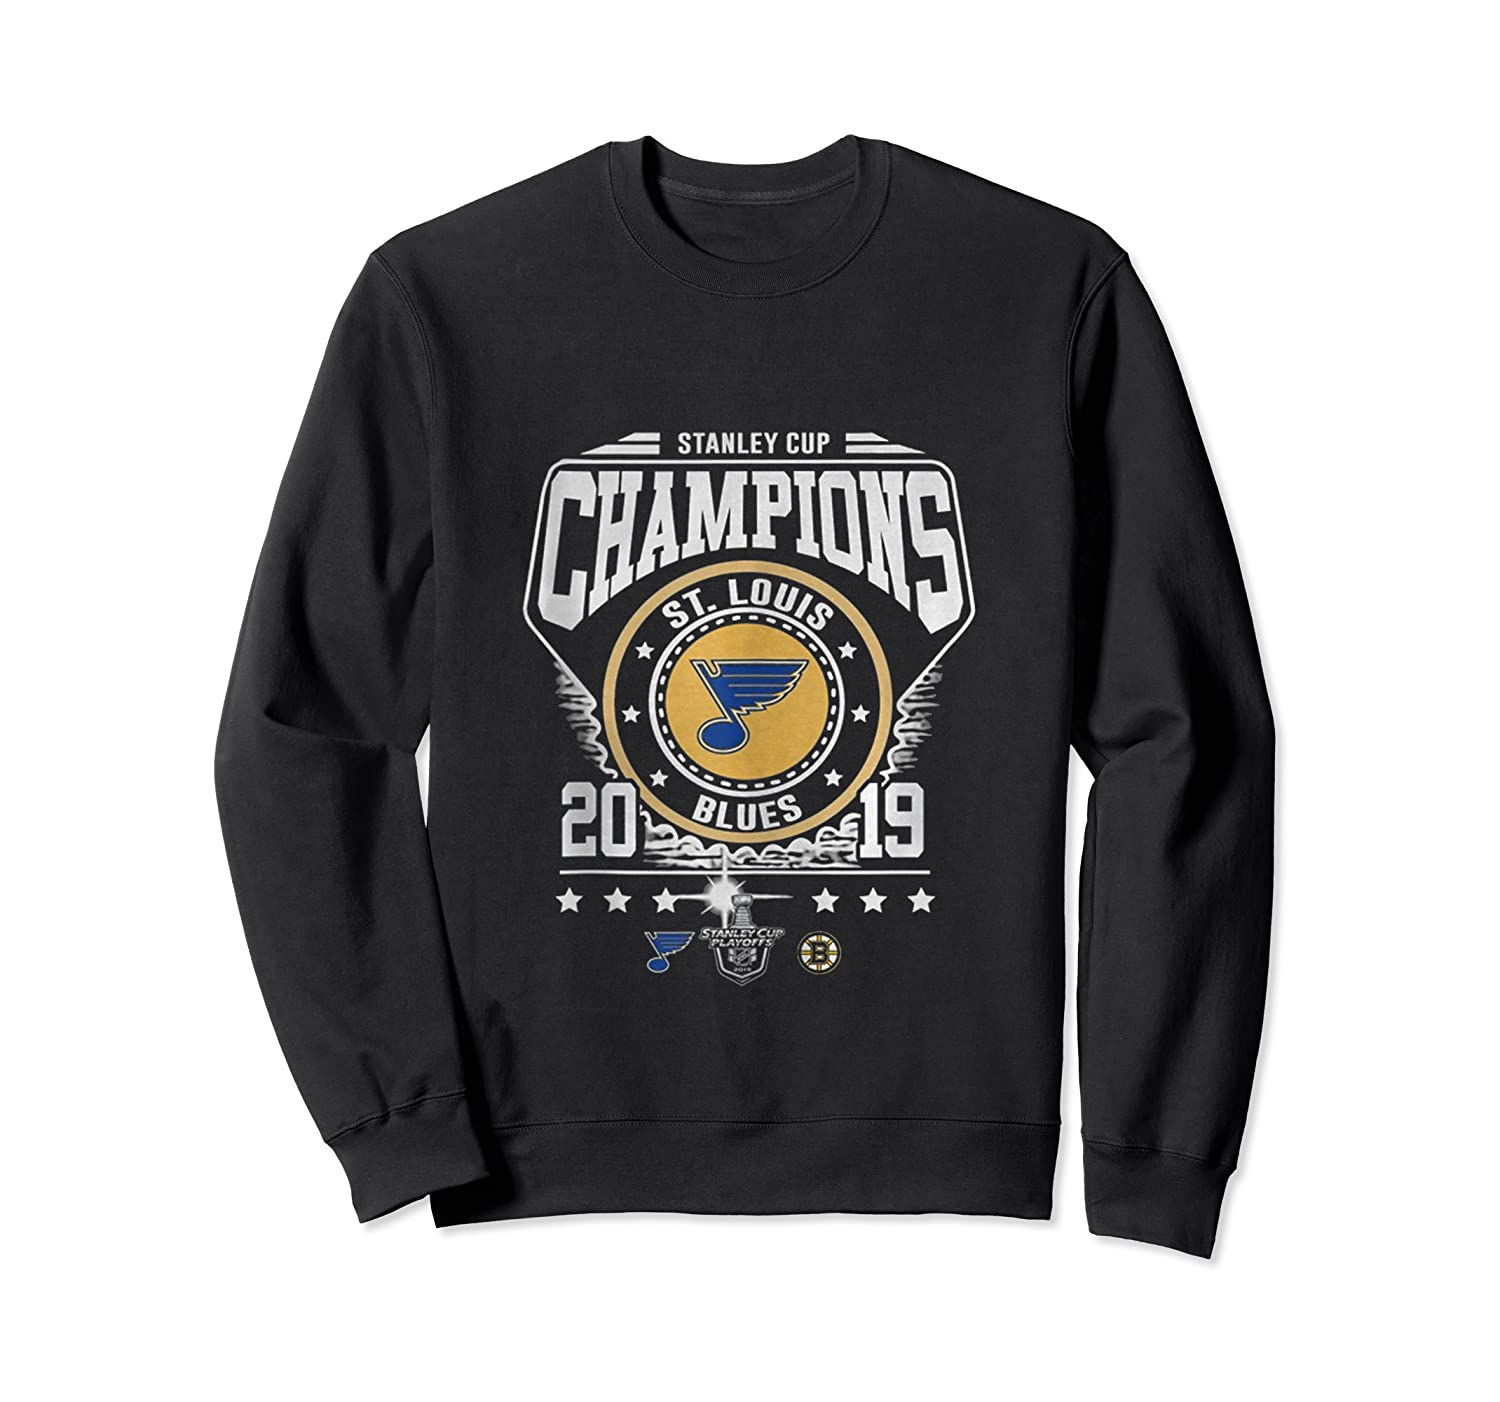 Best Gift Stanley St-louis Cup Blues Champions 2019 Tank Top Shirts Crewneck Sweater